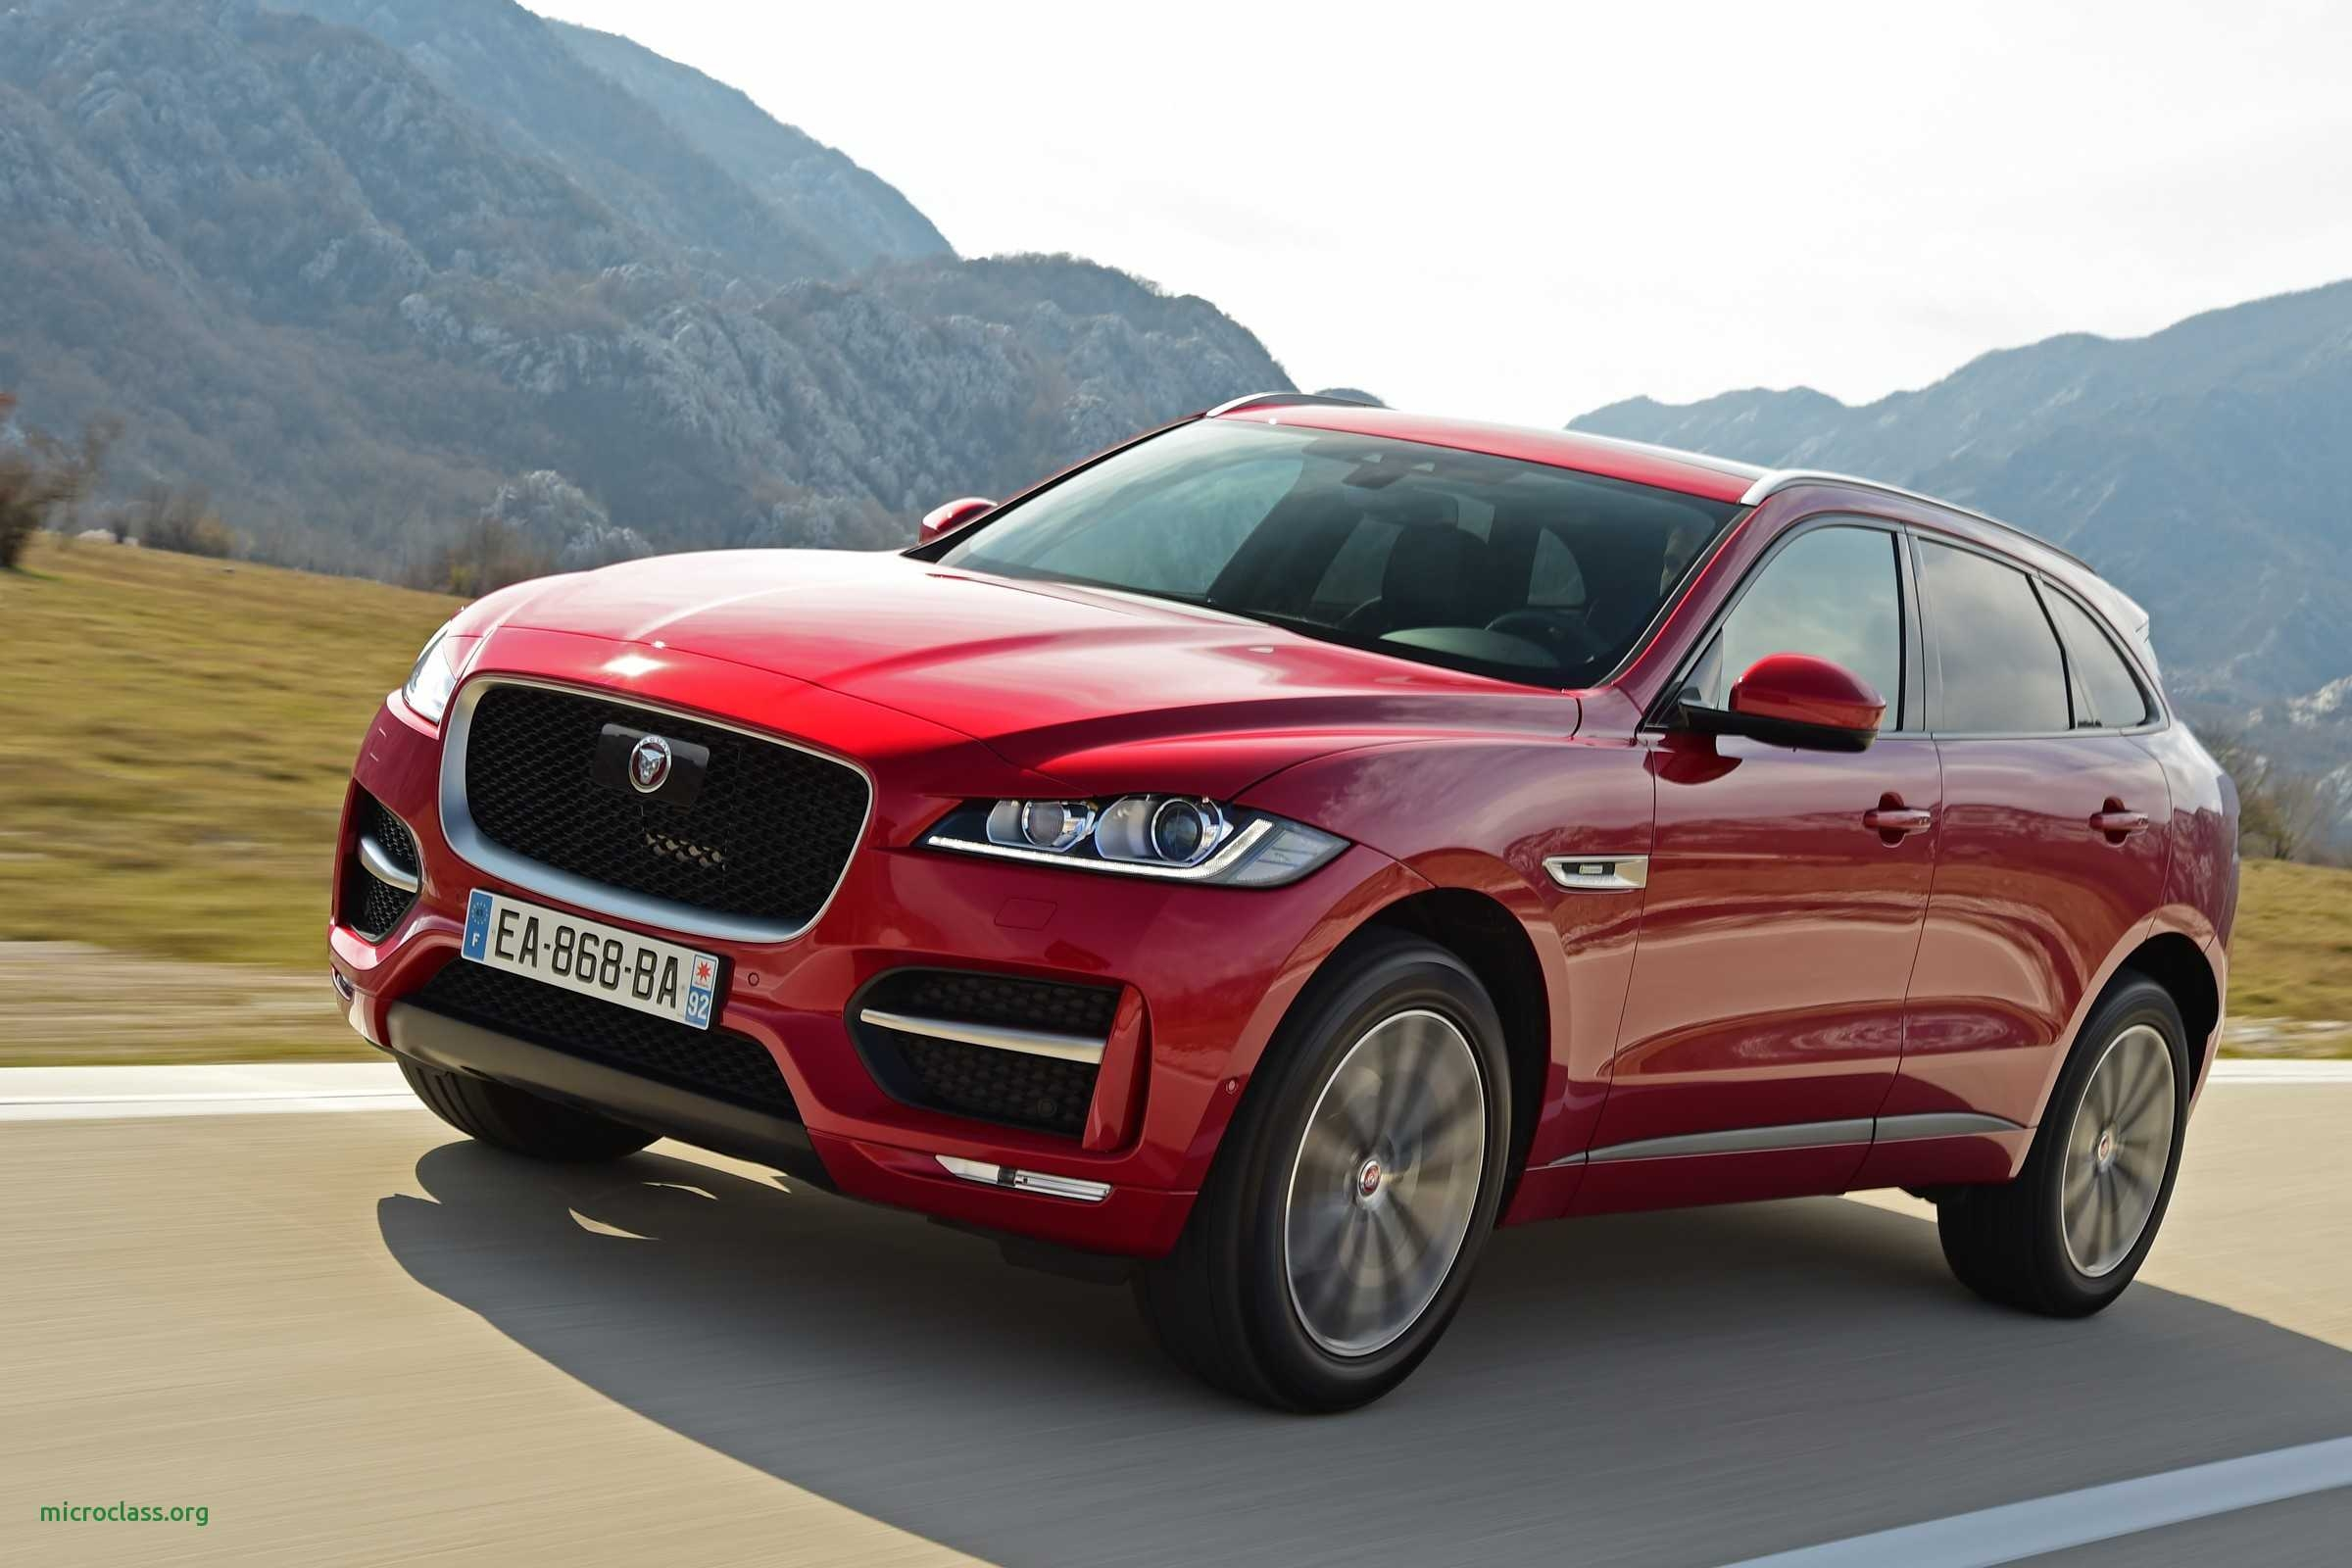 37 The Best 2019 Jaguar Xq Crossover Specs